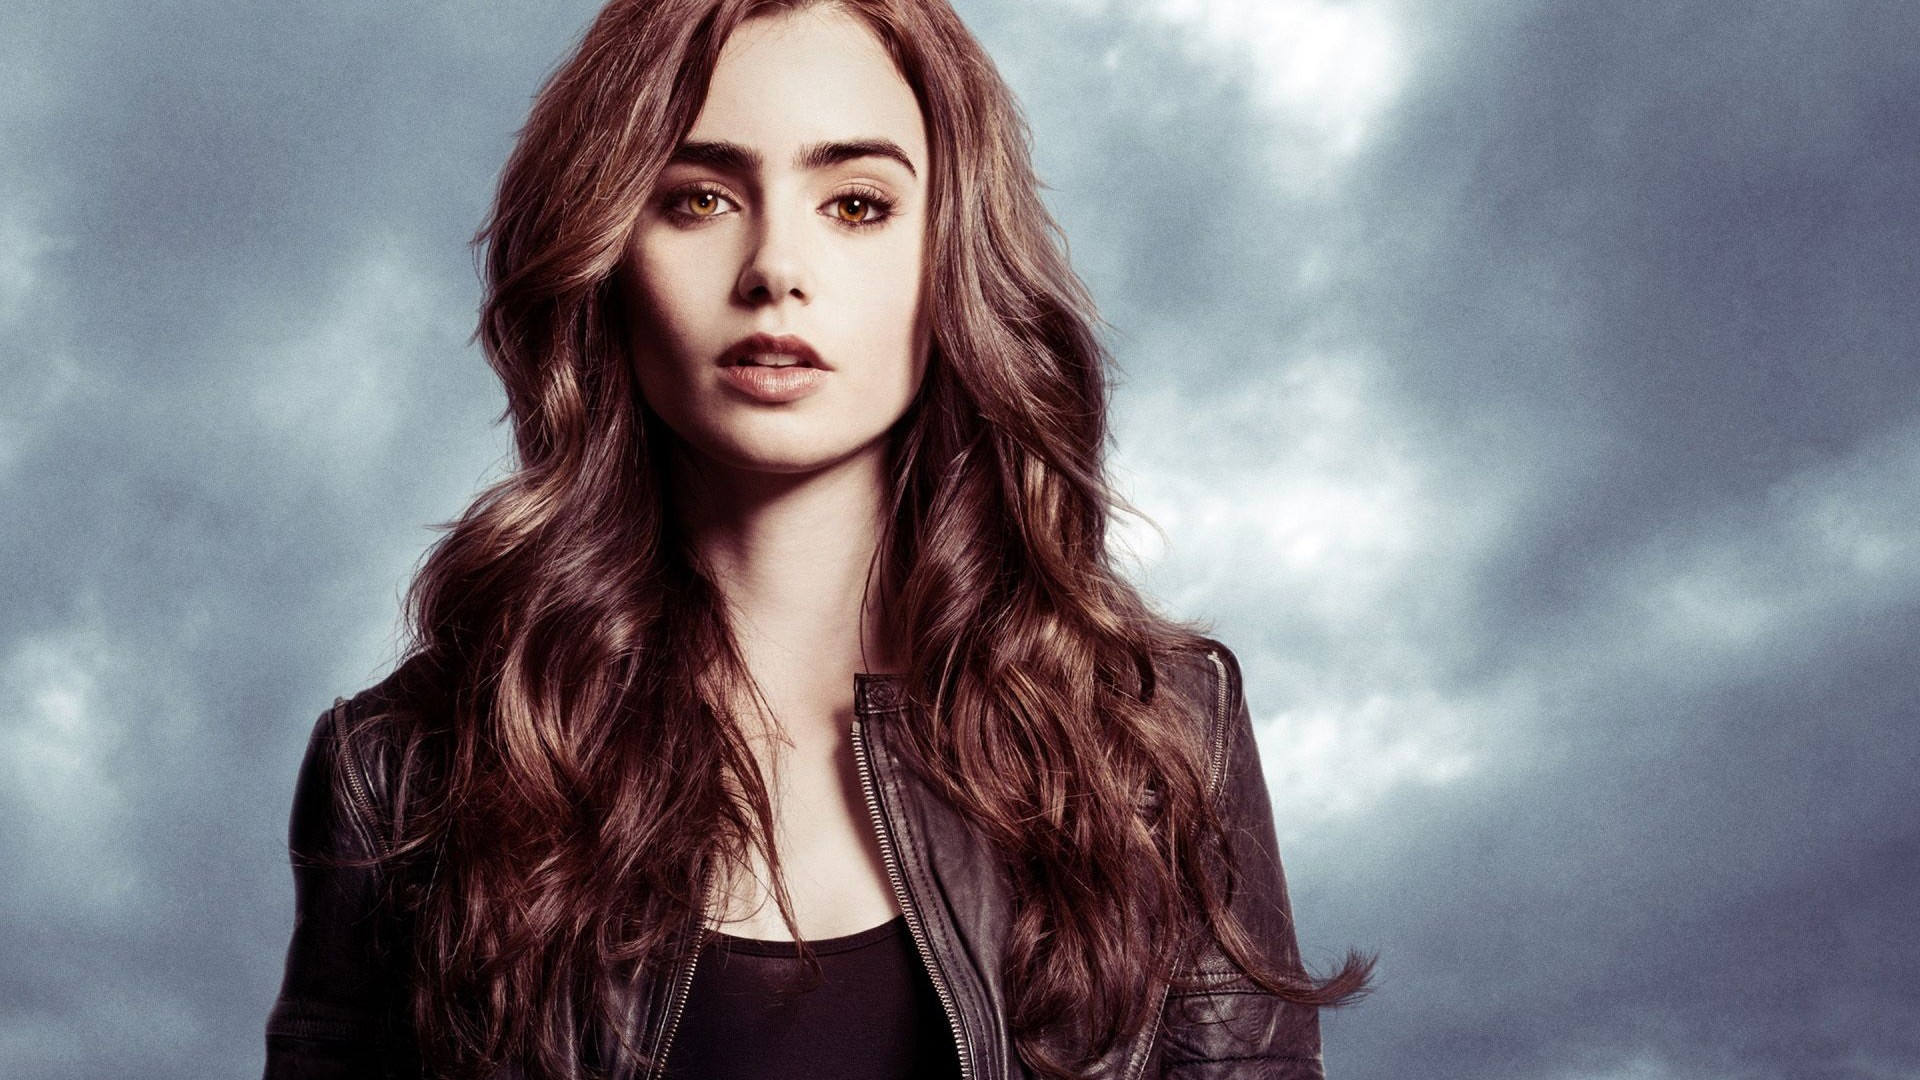 Lily Collins images Mirror Mirror HD wallpaper and